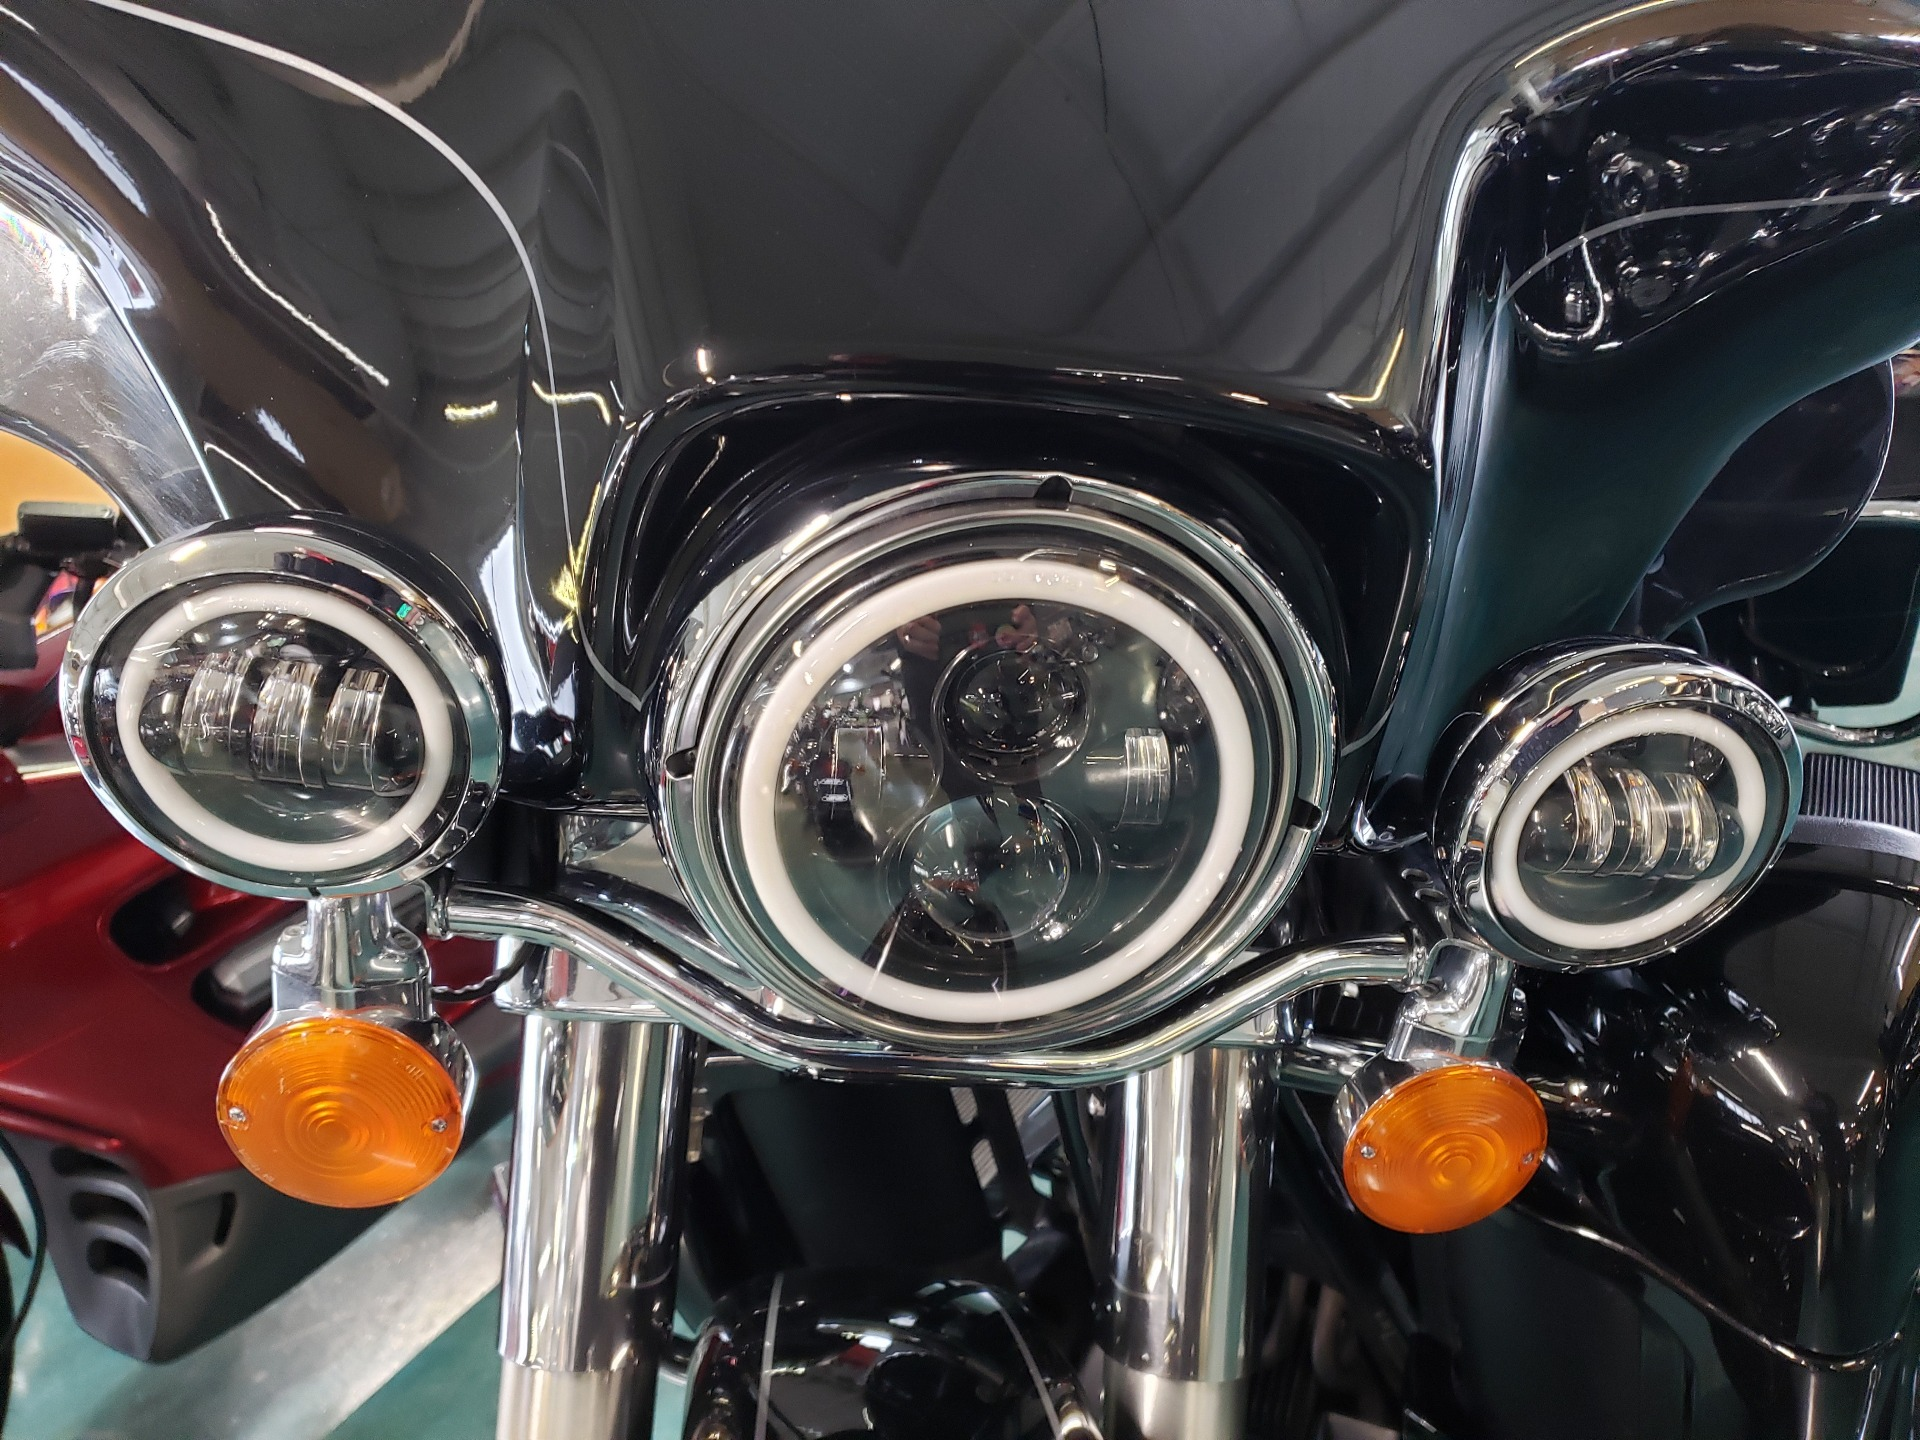 2013 Harley-Davidson Electra Glide® Ultra Limited in Louisville, Tennessee - Photo 11